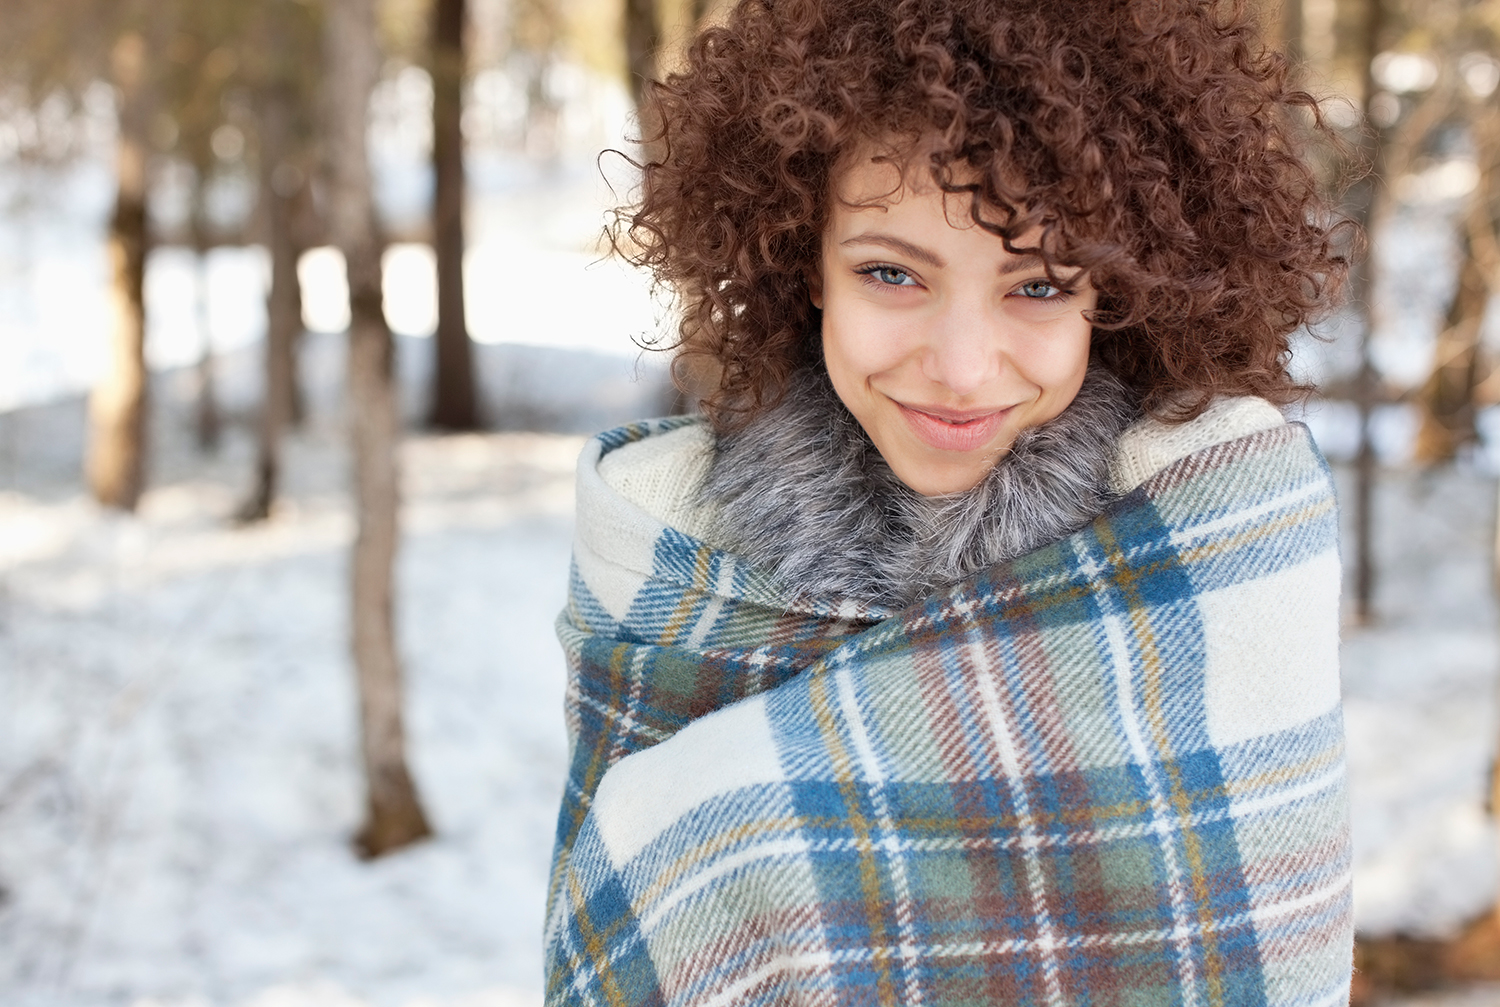 Woman Wrapped in Blanket Smiling